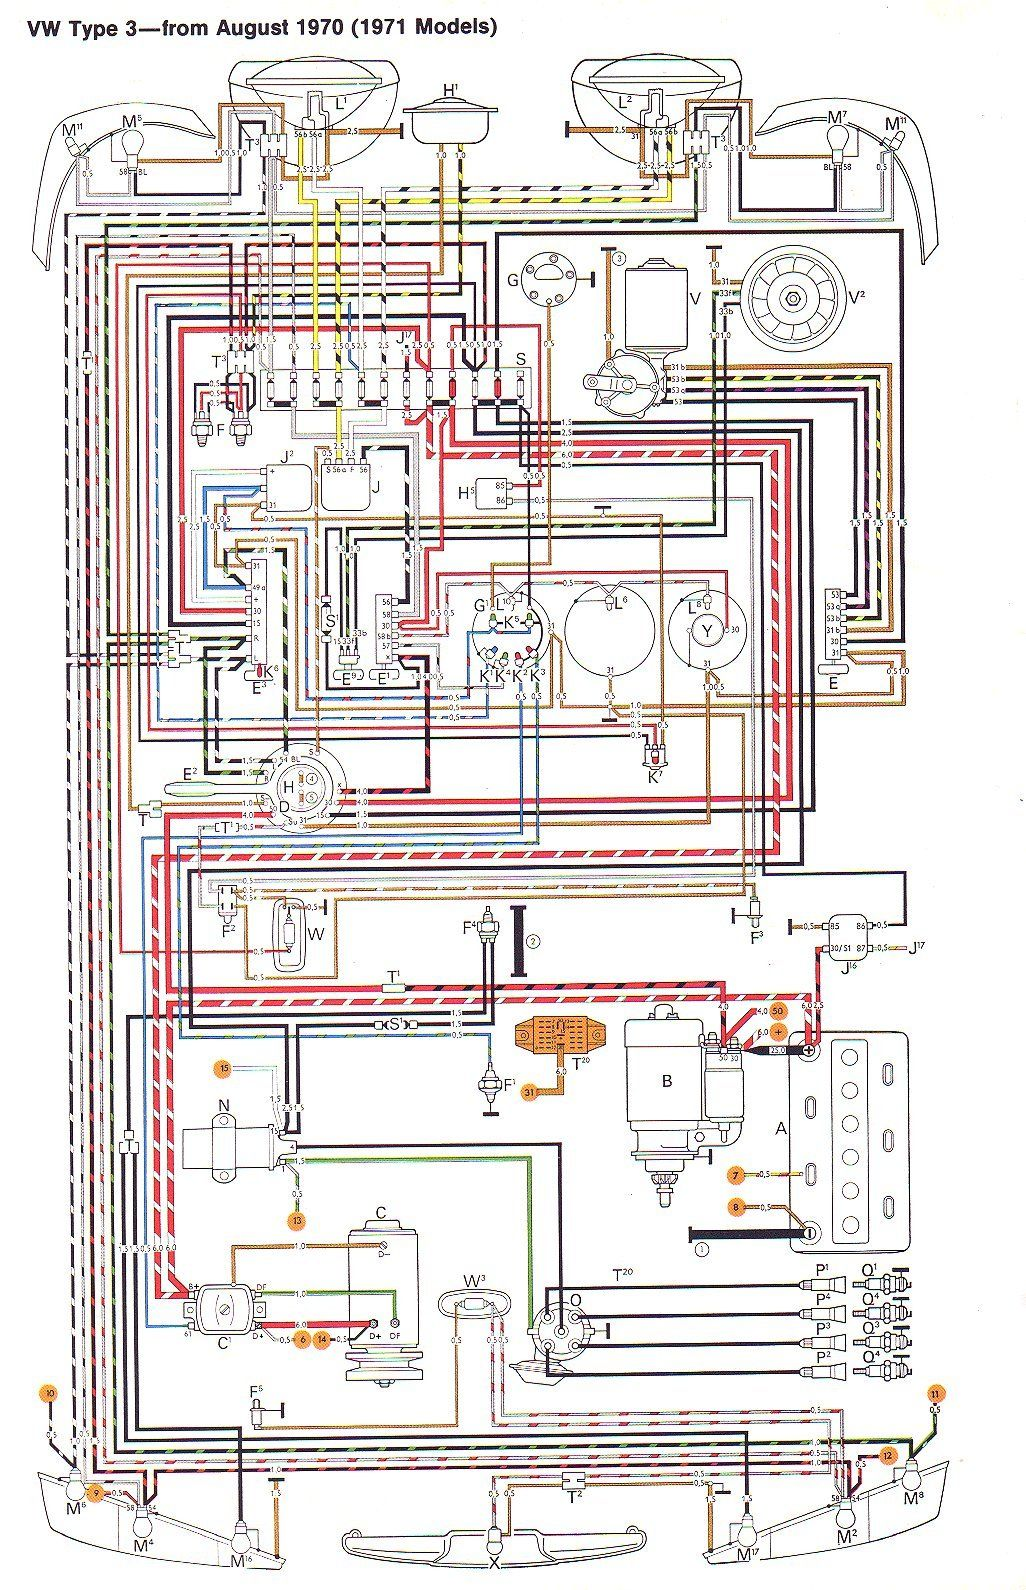 e0db58370f79a63d02d45f00cf63f44a 71 vw t3 wiring diagram ruthie pinterest volkswagen, engine vw engine wiring diagram at edmiracle.co